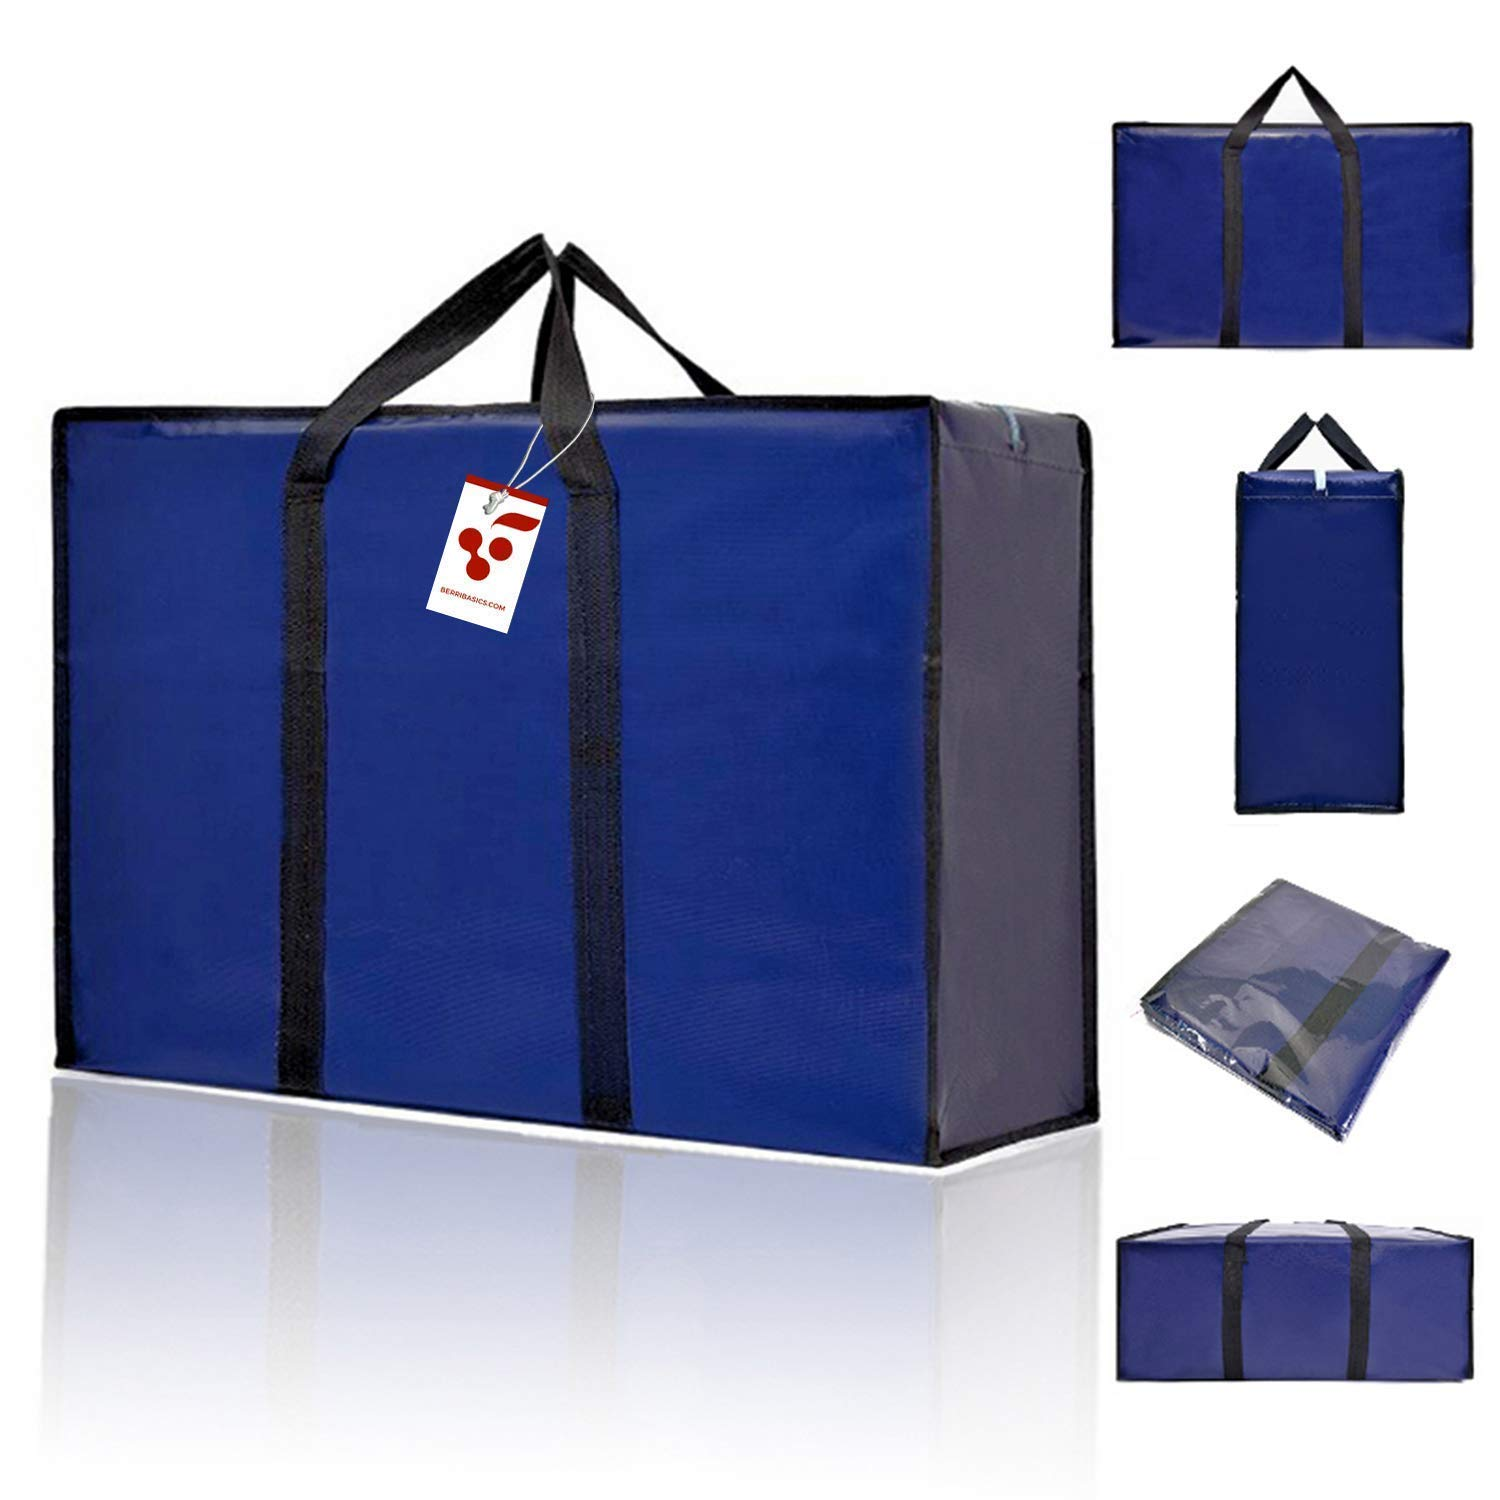 Extra Large Bag Laundry Shopping Moving Storage Bags Zipped Waterproof Reusable